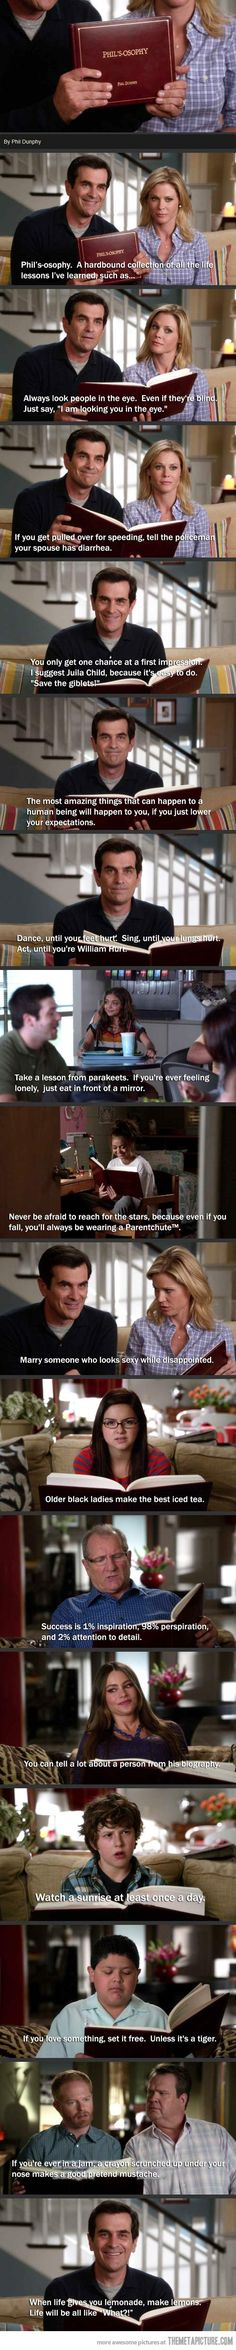 Phil's-osophy… I love modern family.